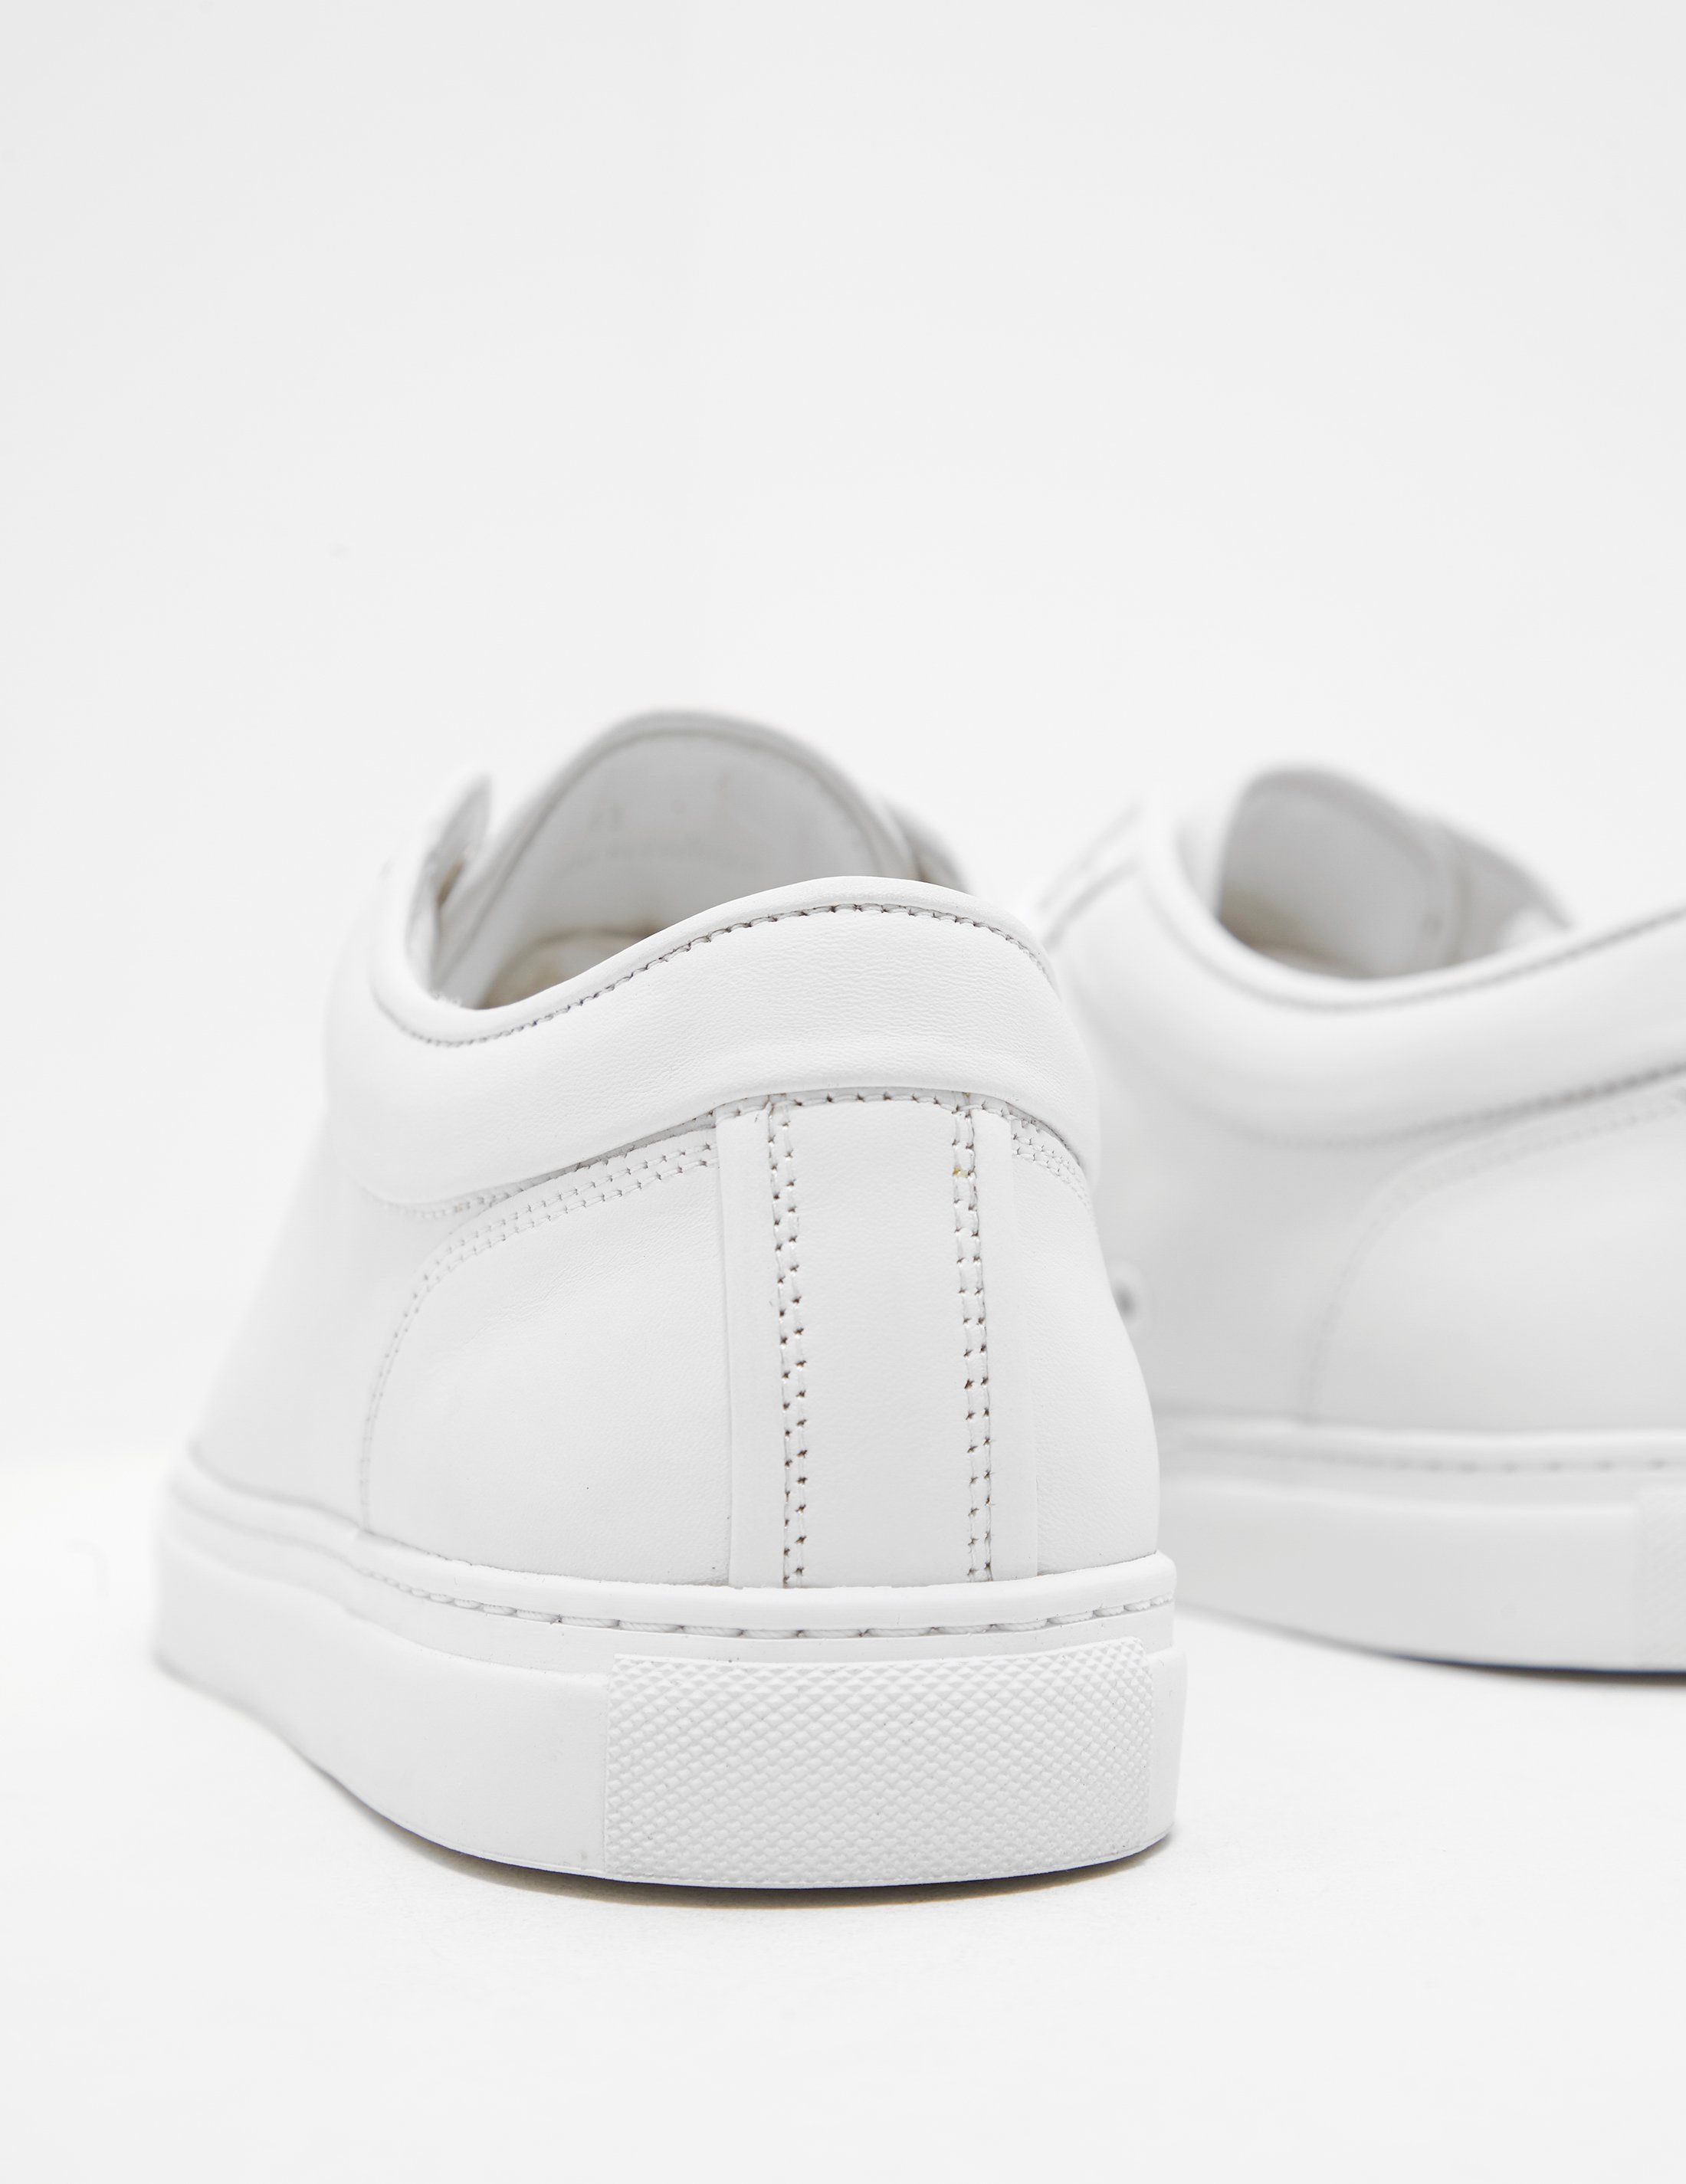 ETQ. Amsterdam Low Top Trainers